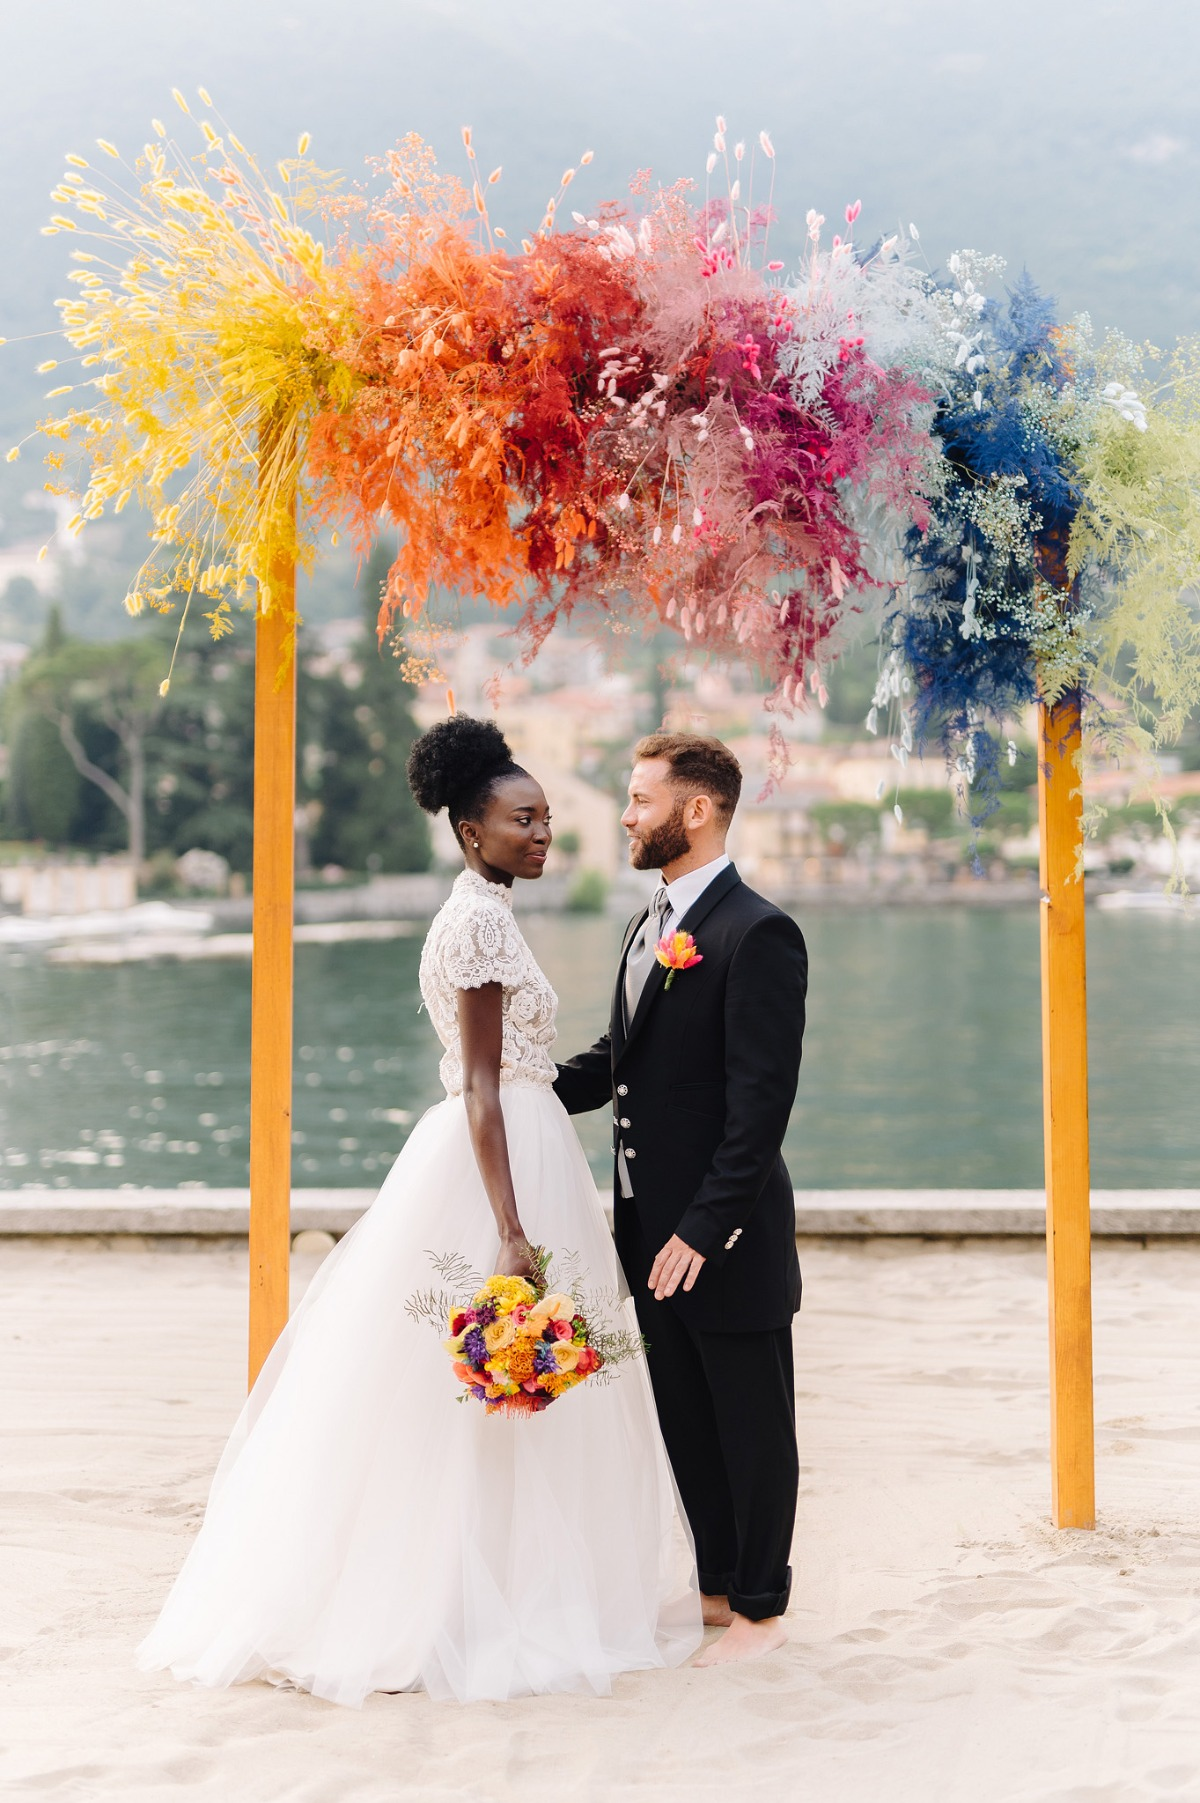 vibrant and colorful wedding ideas